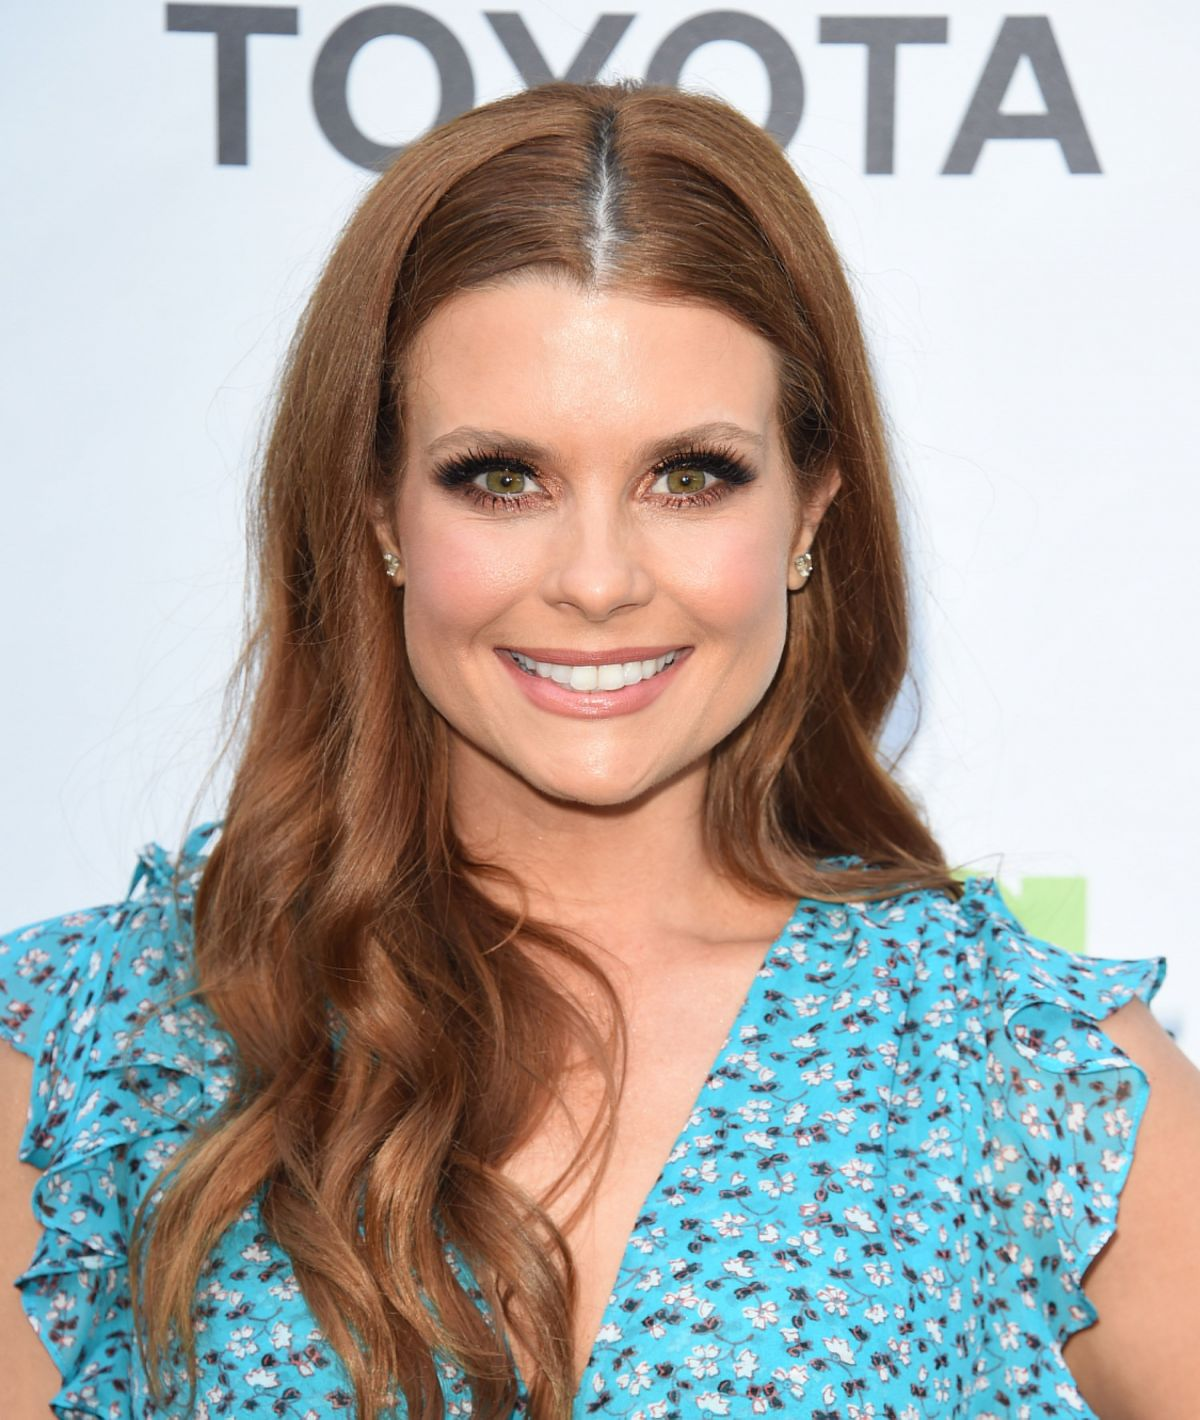 Joanna Garcia Nude Photos 22